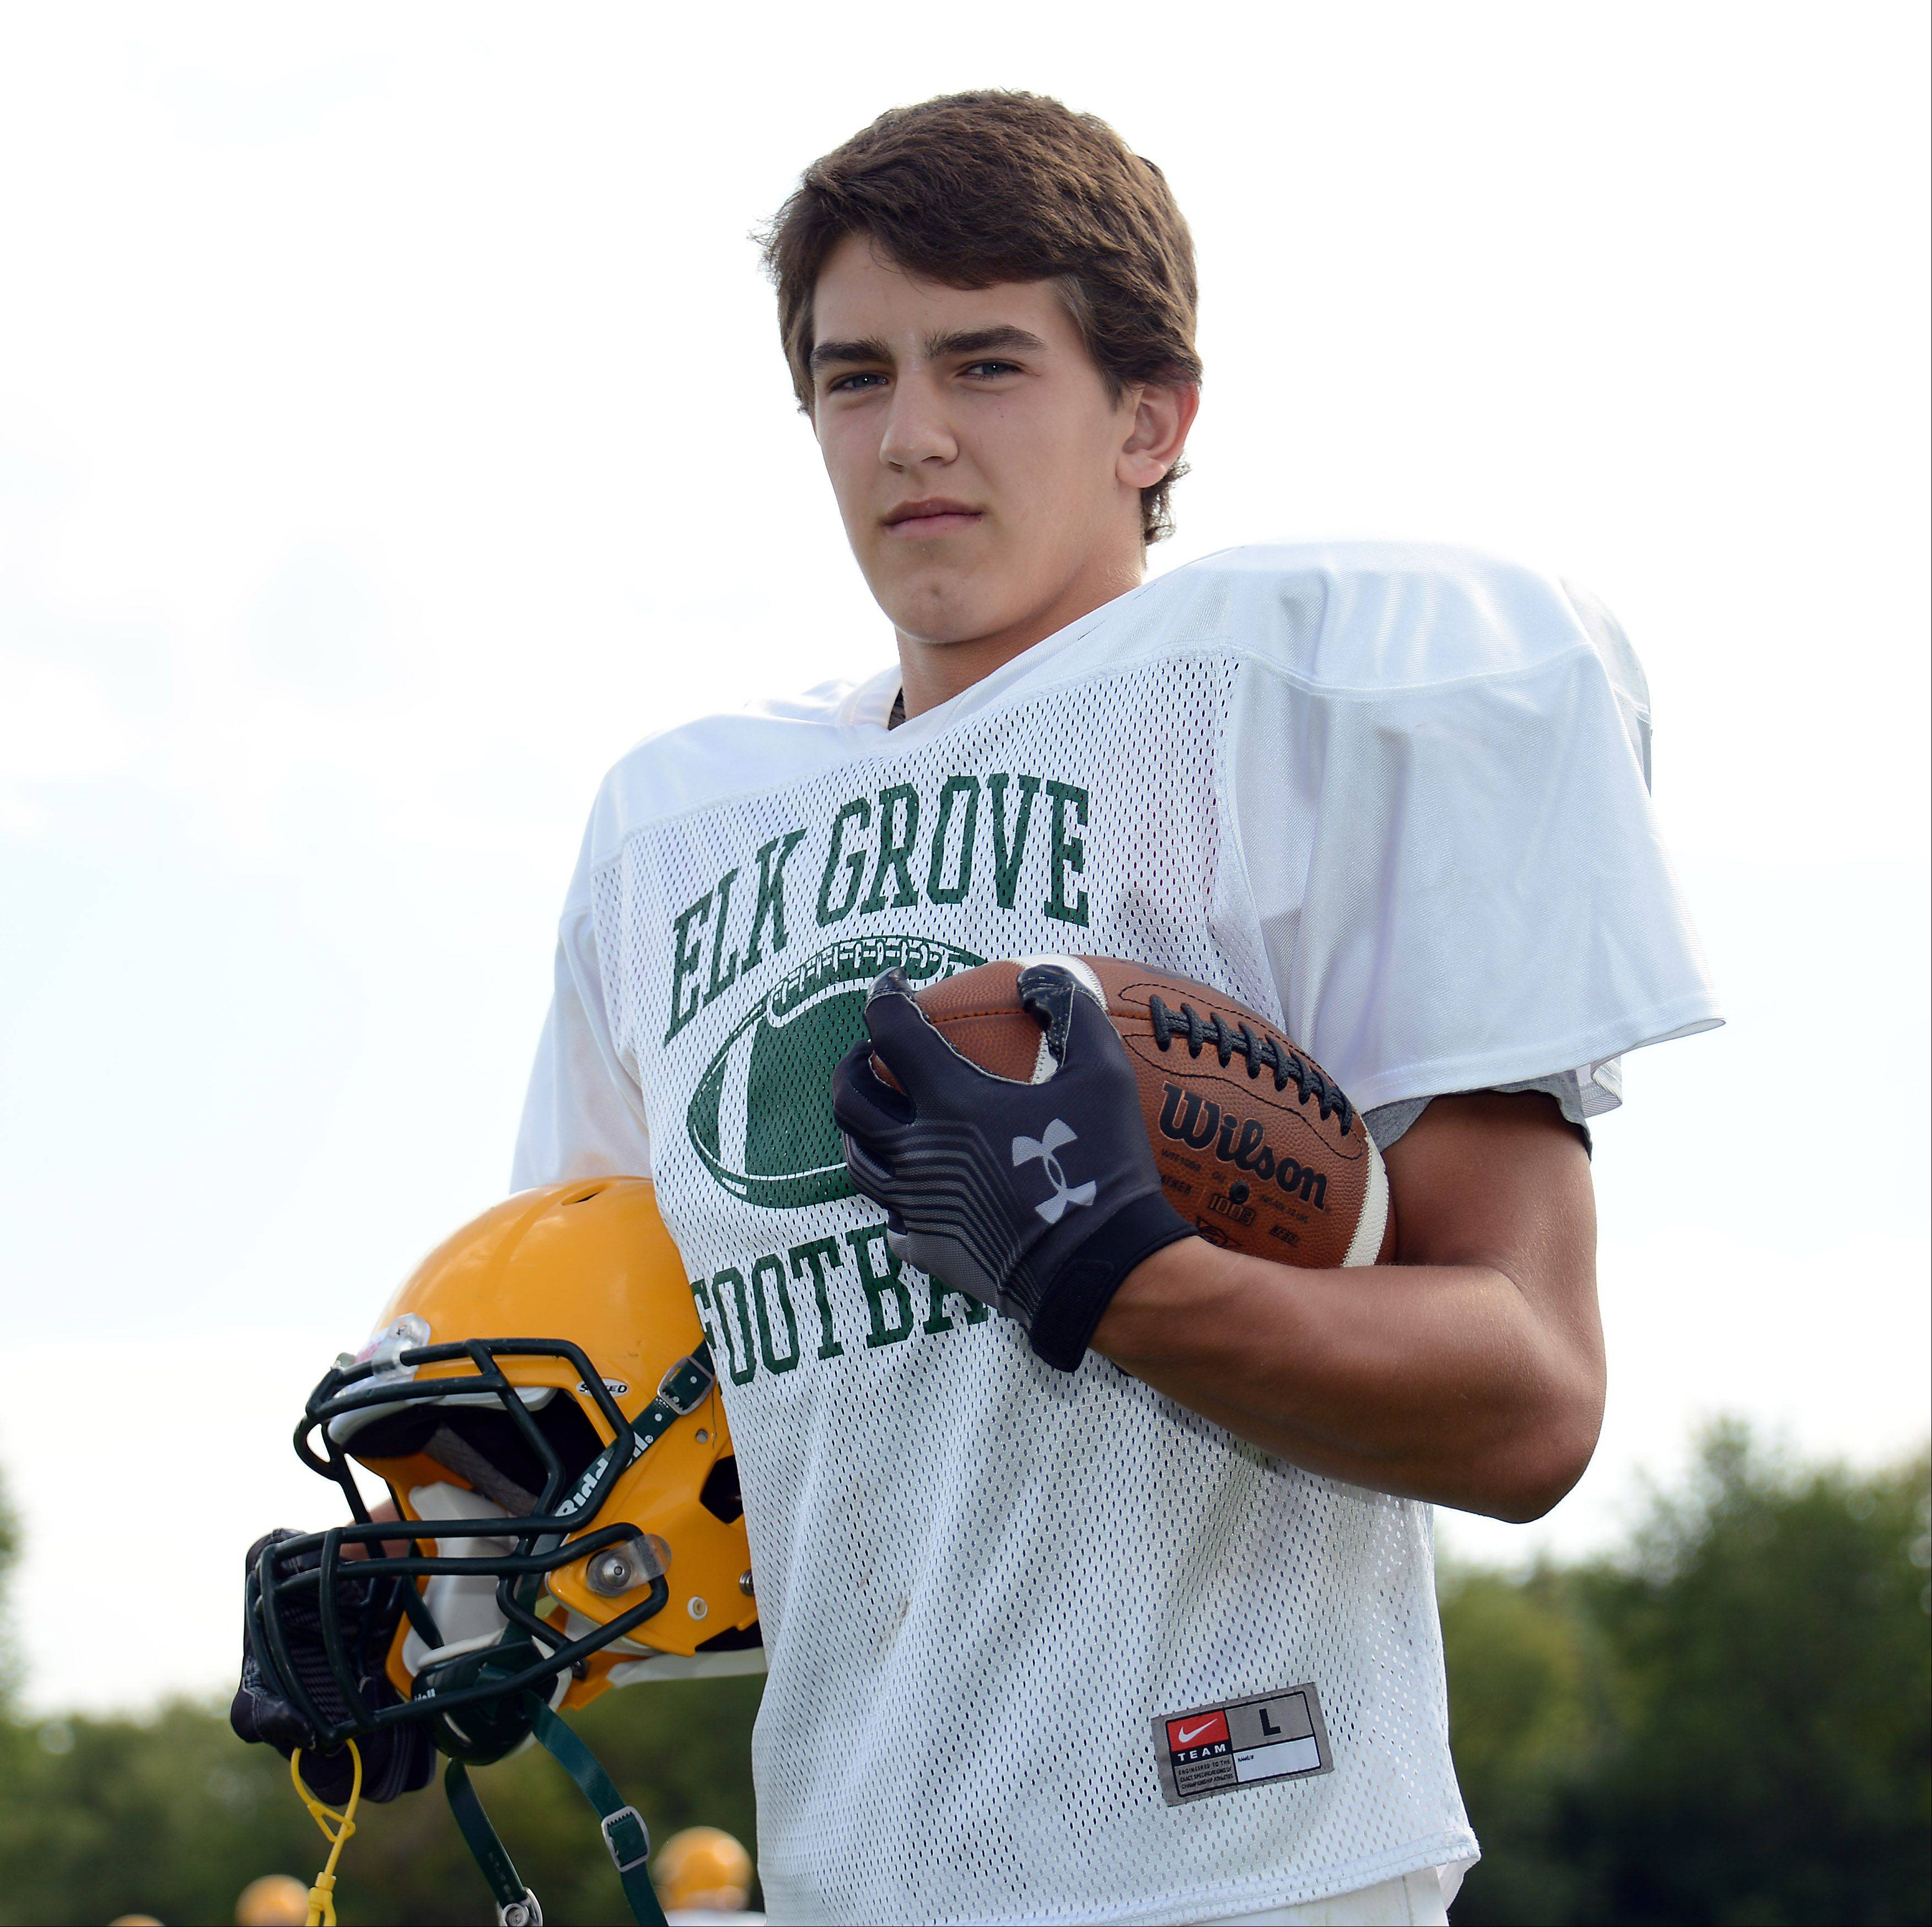 Senior standout Mike Bishoff leads what figures to be a strong Elk Grove defense this fall.